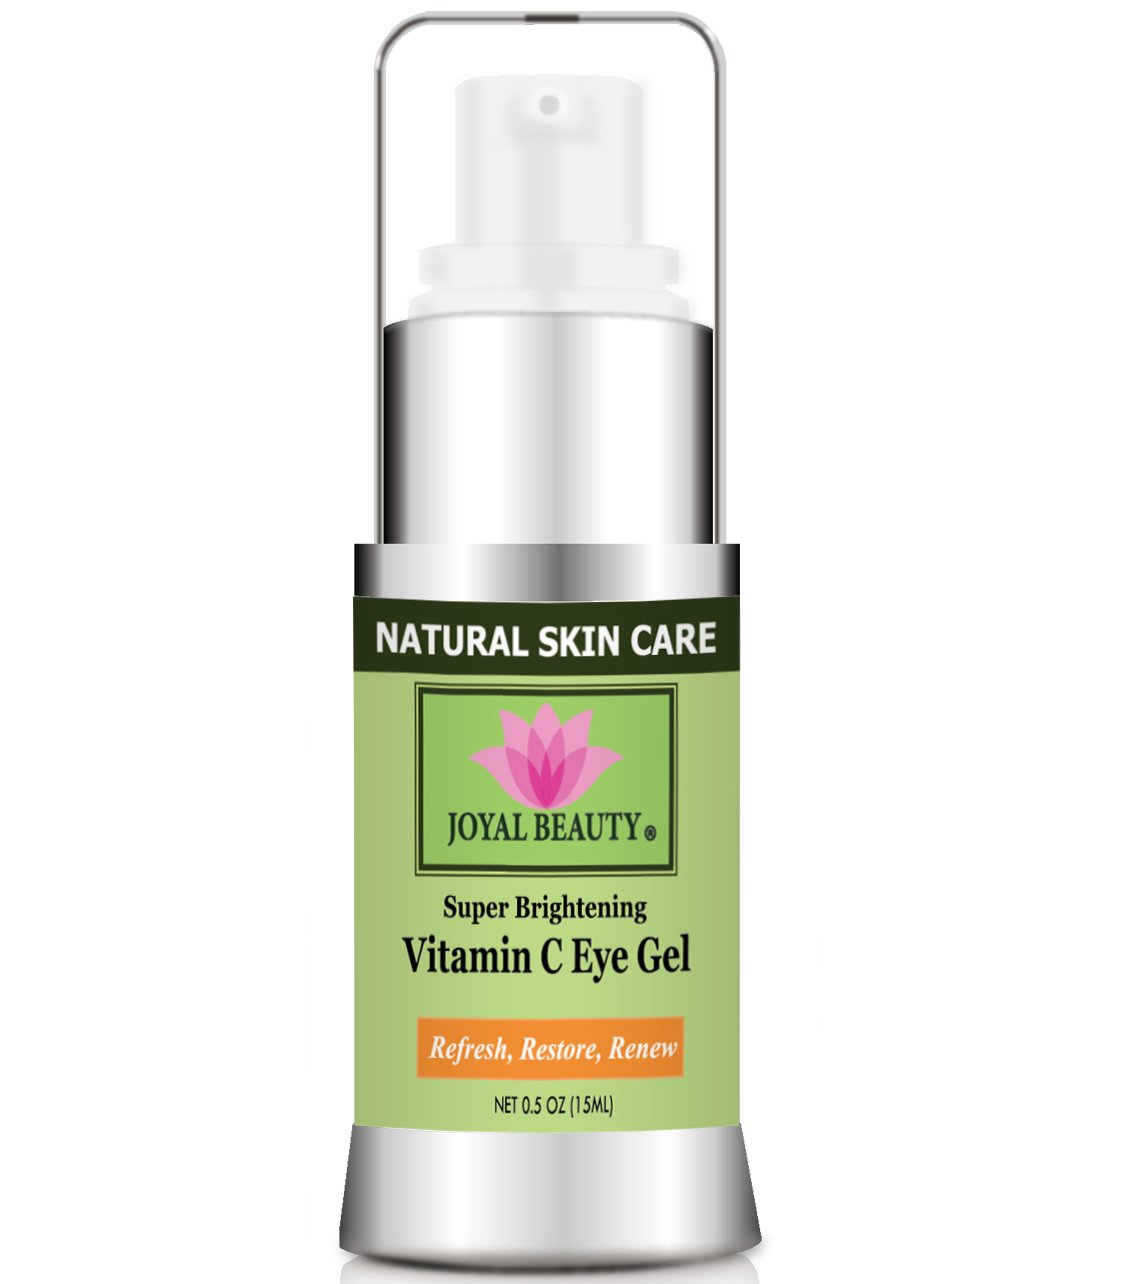 Joyal Beauty Best Organic Eye Cream Gel Moisturizer for Dark Circles and Puffiness Bags Anti Aging Fine Lines and Wrinkles with Hyaluronic Acid Vitamin C Caffeine Peptide Cucumber for Men and Women by Joyal Beauty (Image #7)